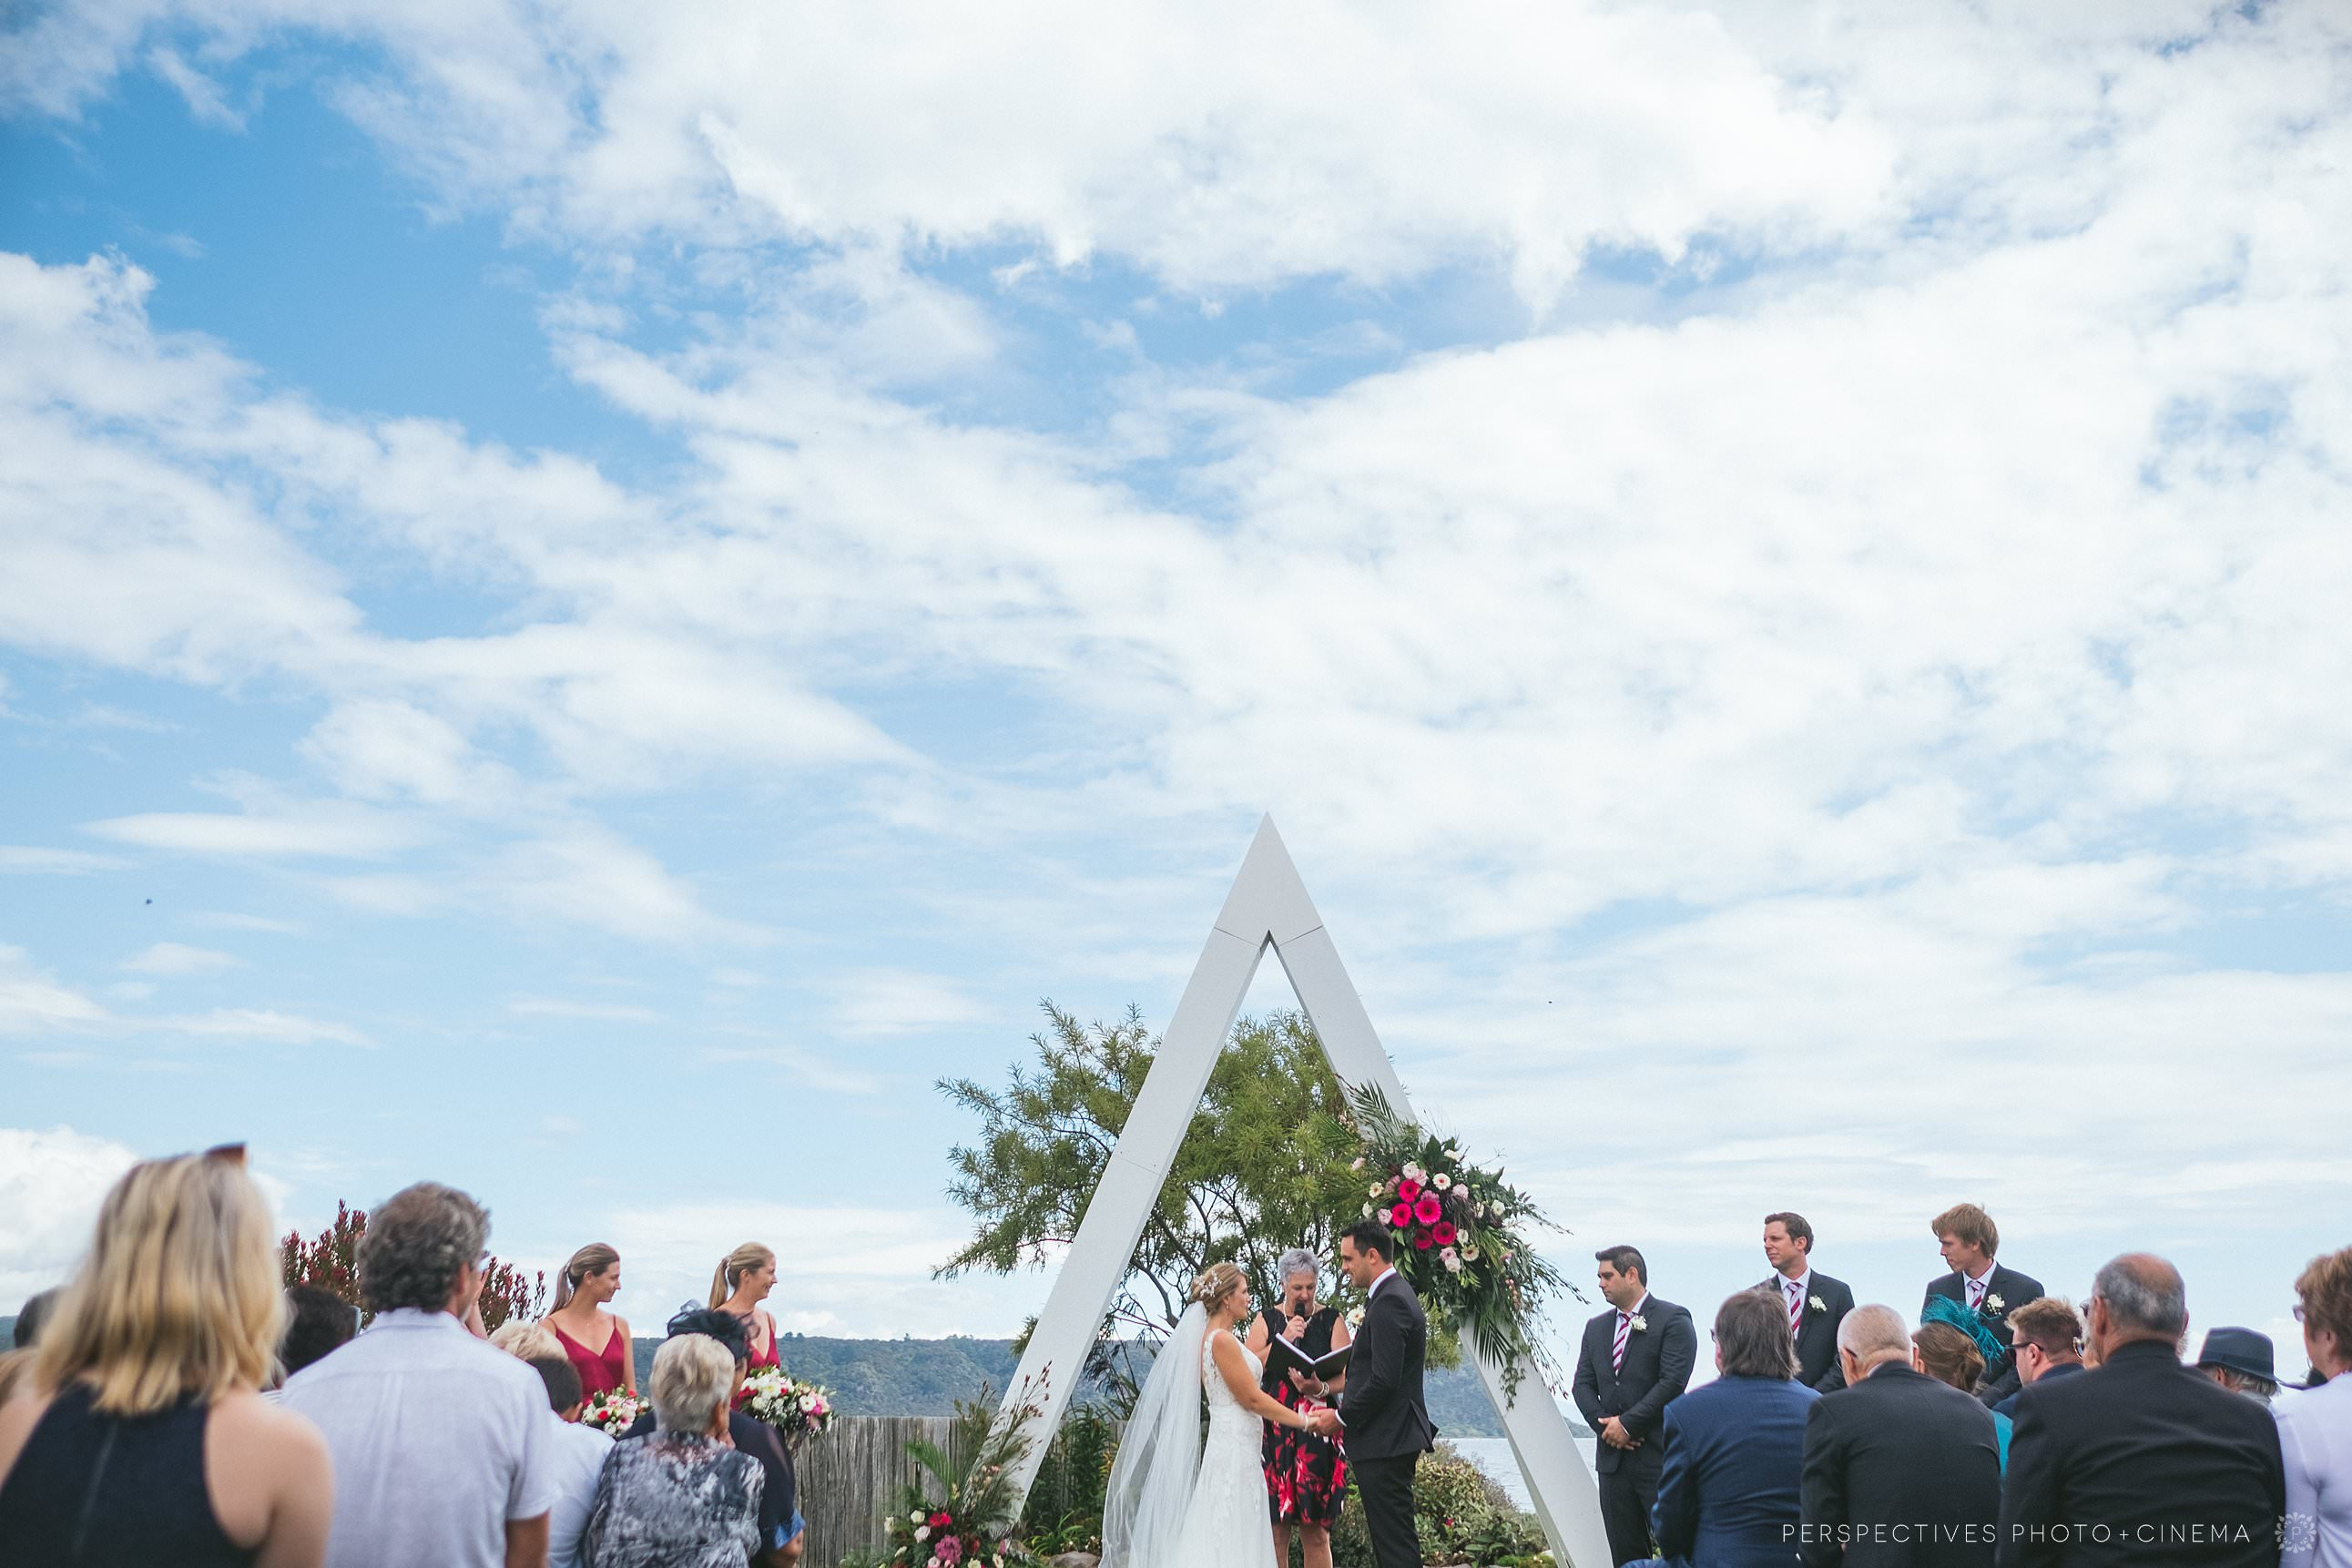 Taupo wedding photographer - ceremony with arch